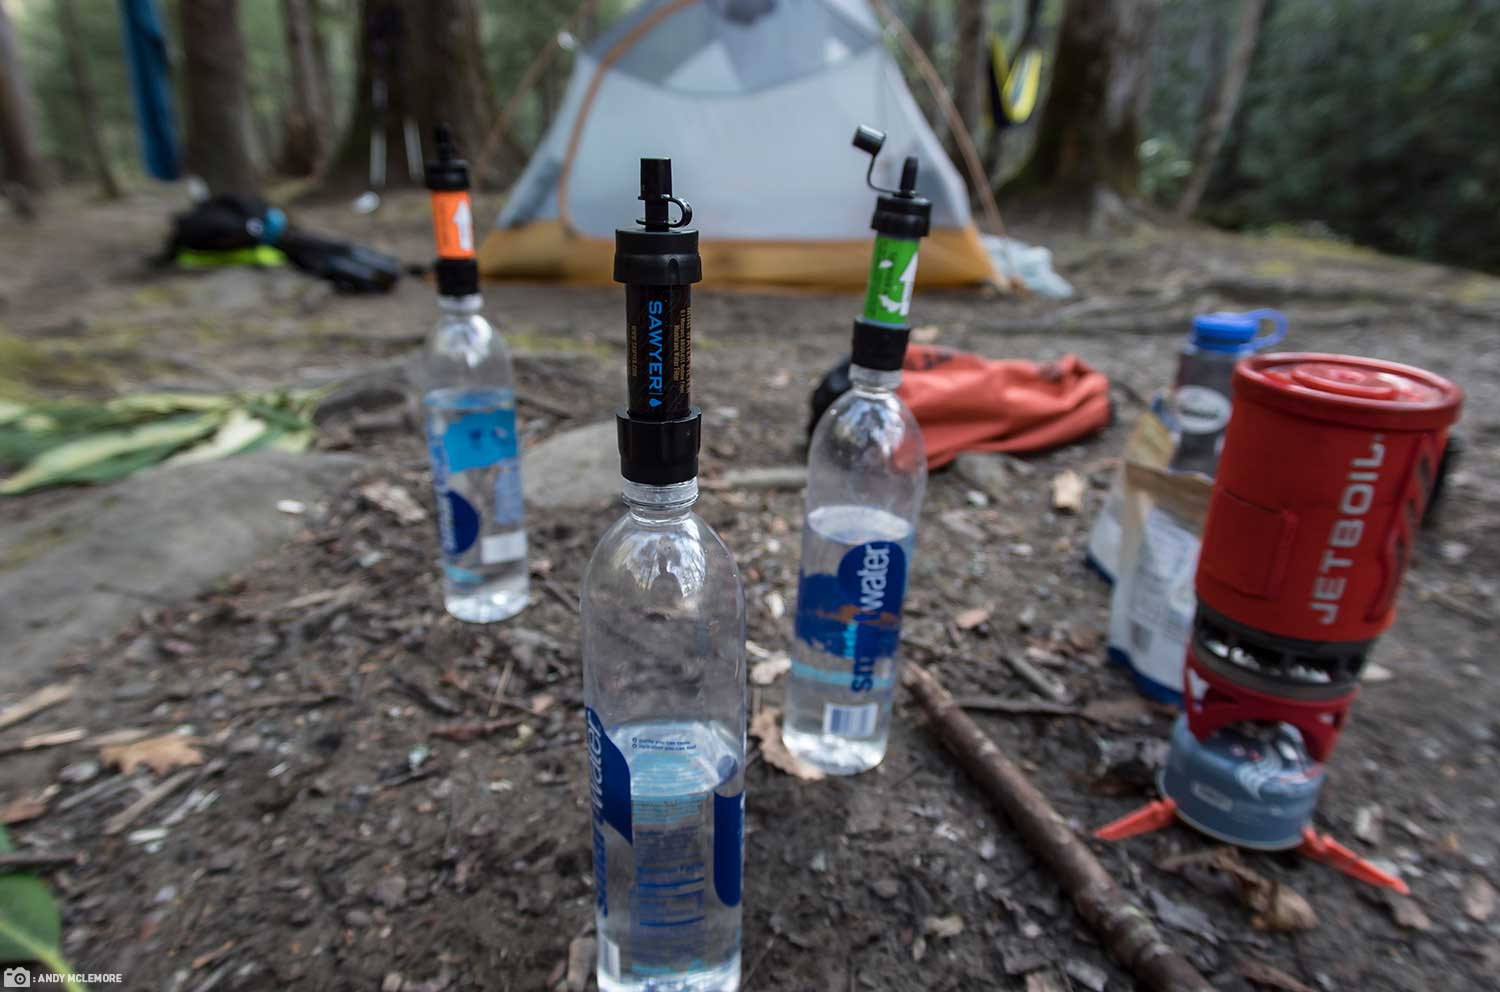 A Campsite Photo with Sawyer MINI Water Filters on Smart Water Bottles in Front of a Tent